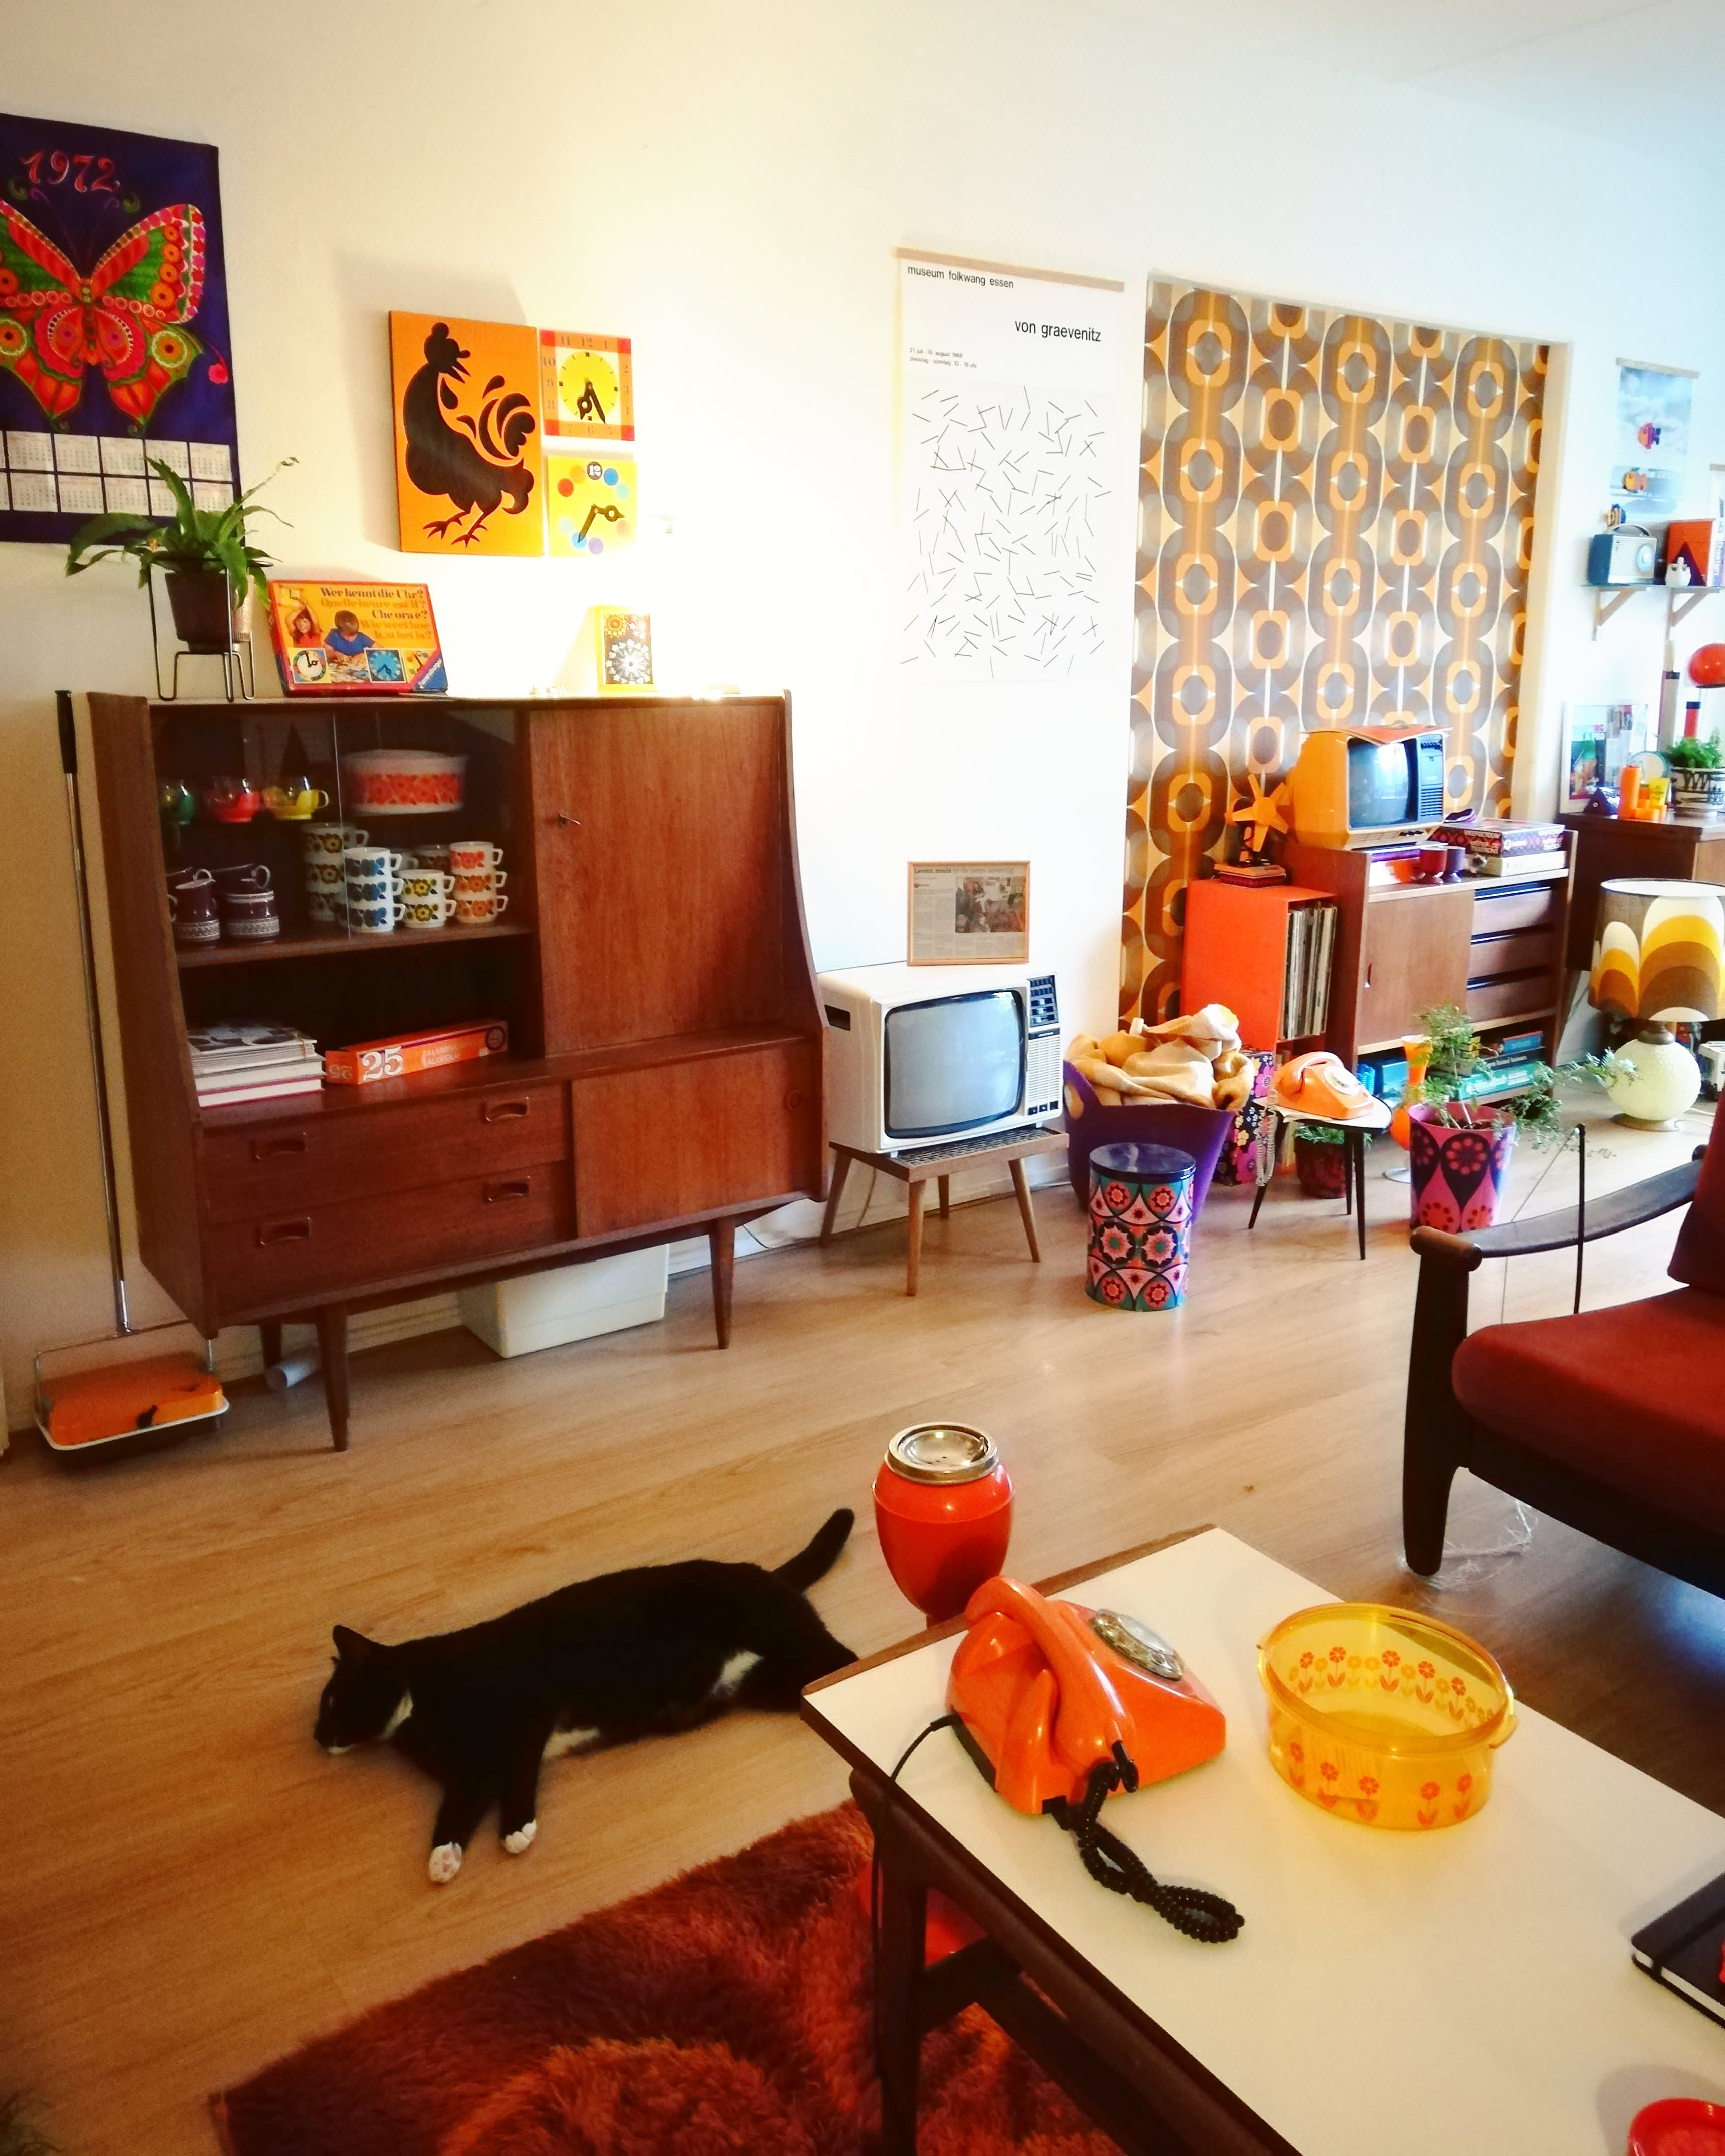 This Dutch Home Is Like Stepping Onto The Set Of That 70s Show 70s Home Decor Retro Apartment Retro Living Rooms